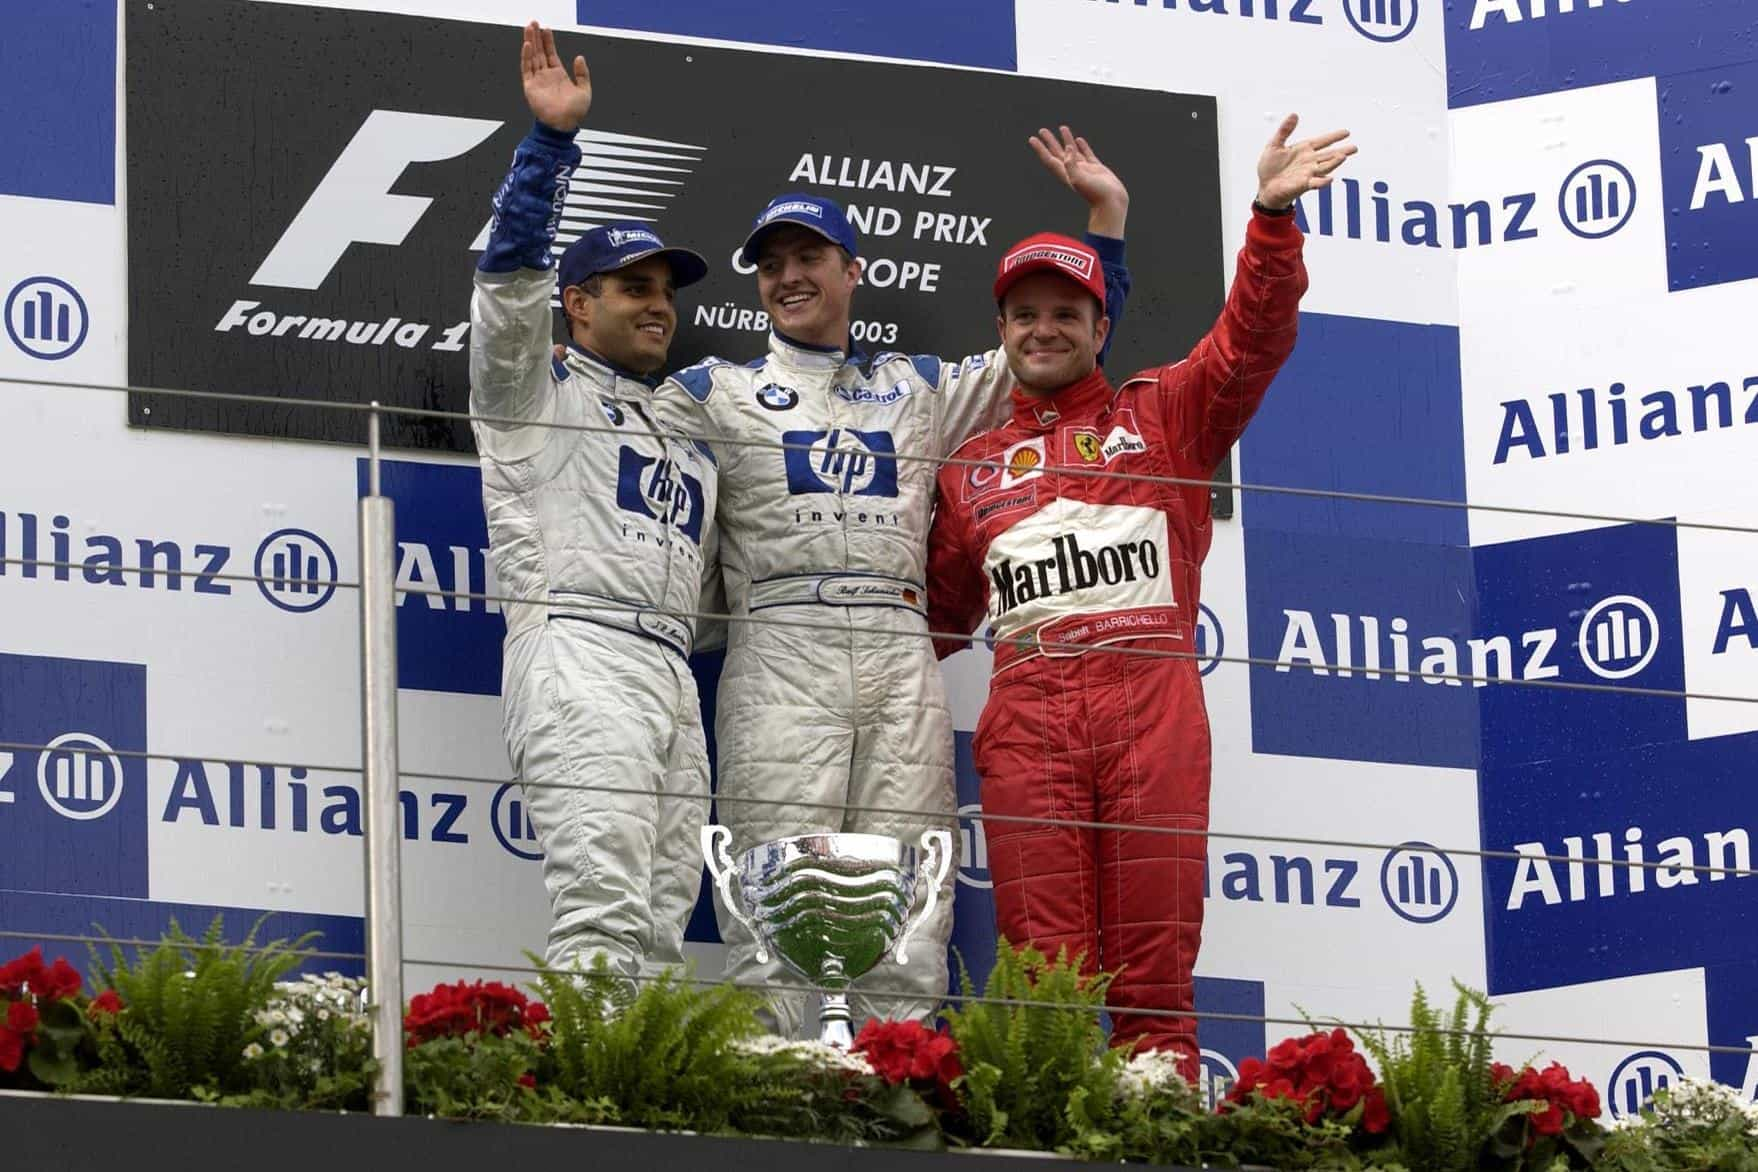 Nurburgring F1 2003 European GP podium Ralf Schumacher Montoya Barrichello Photo Ferrari